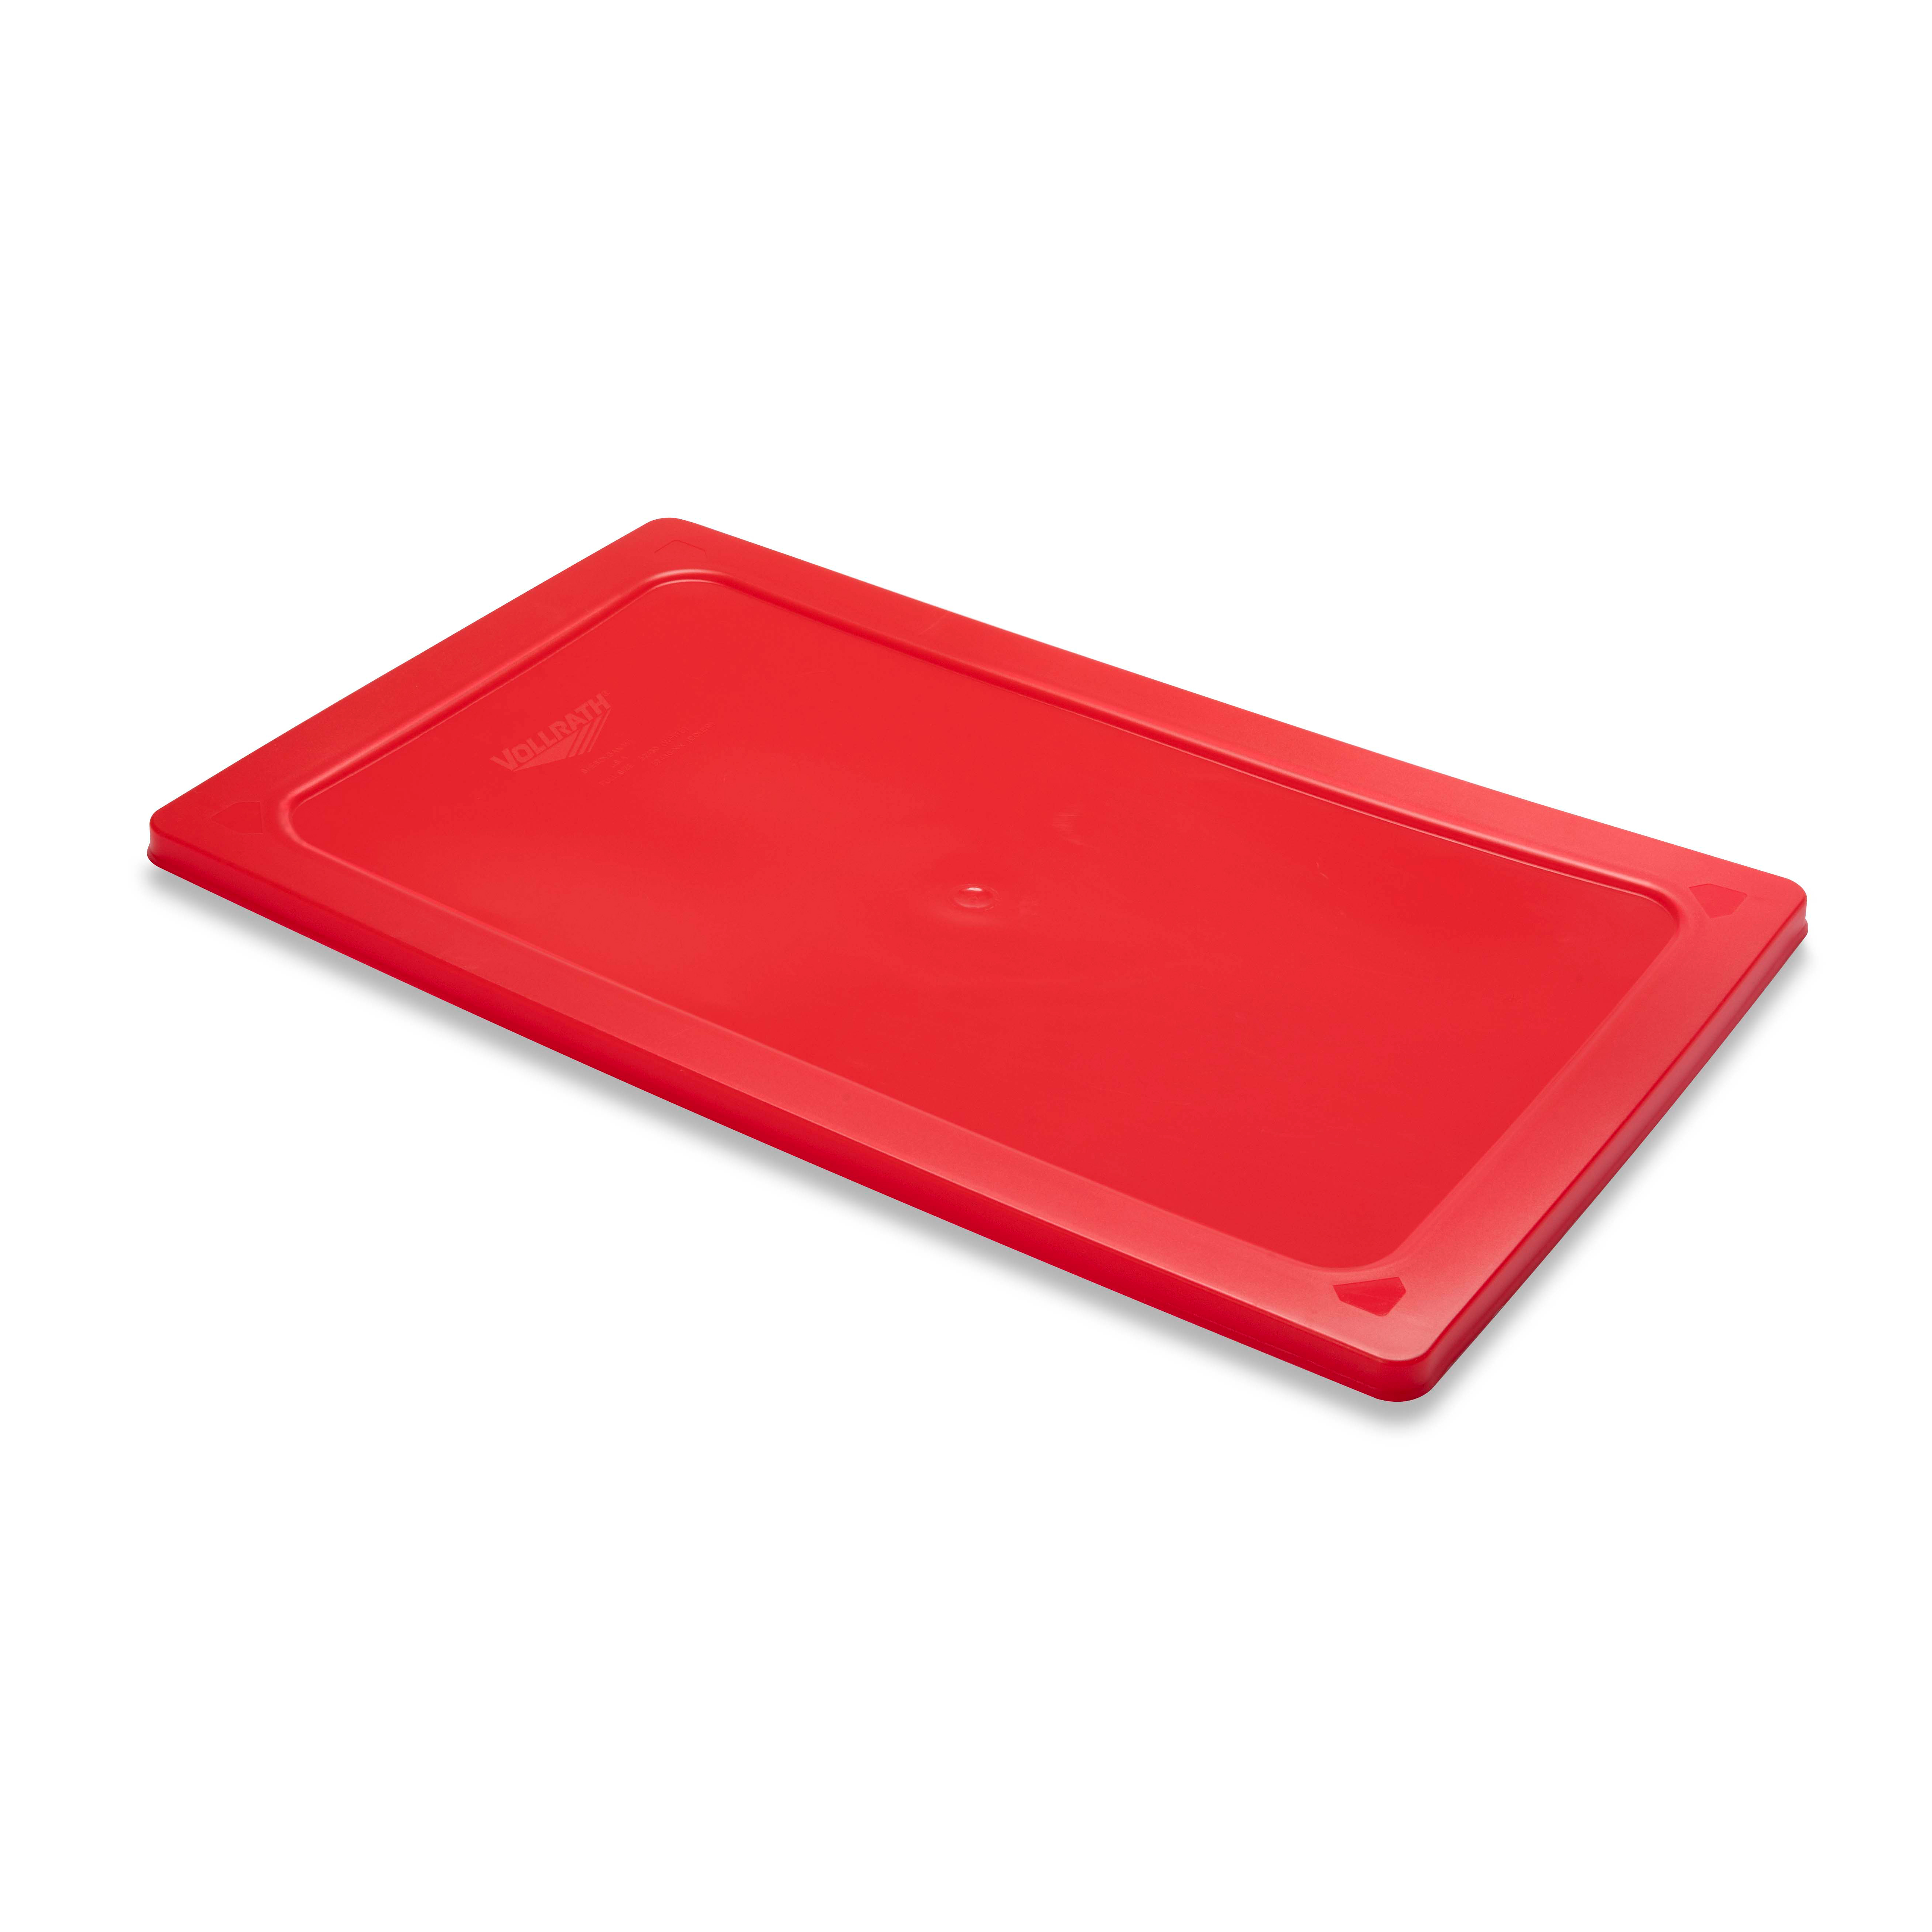 Vollrath 52430-02 food pan cover, plastic